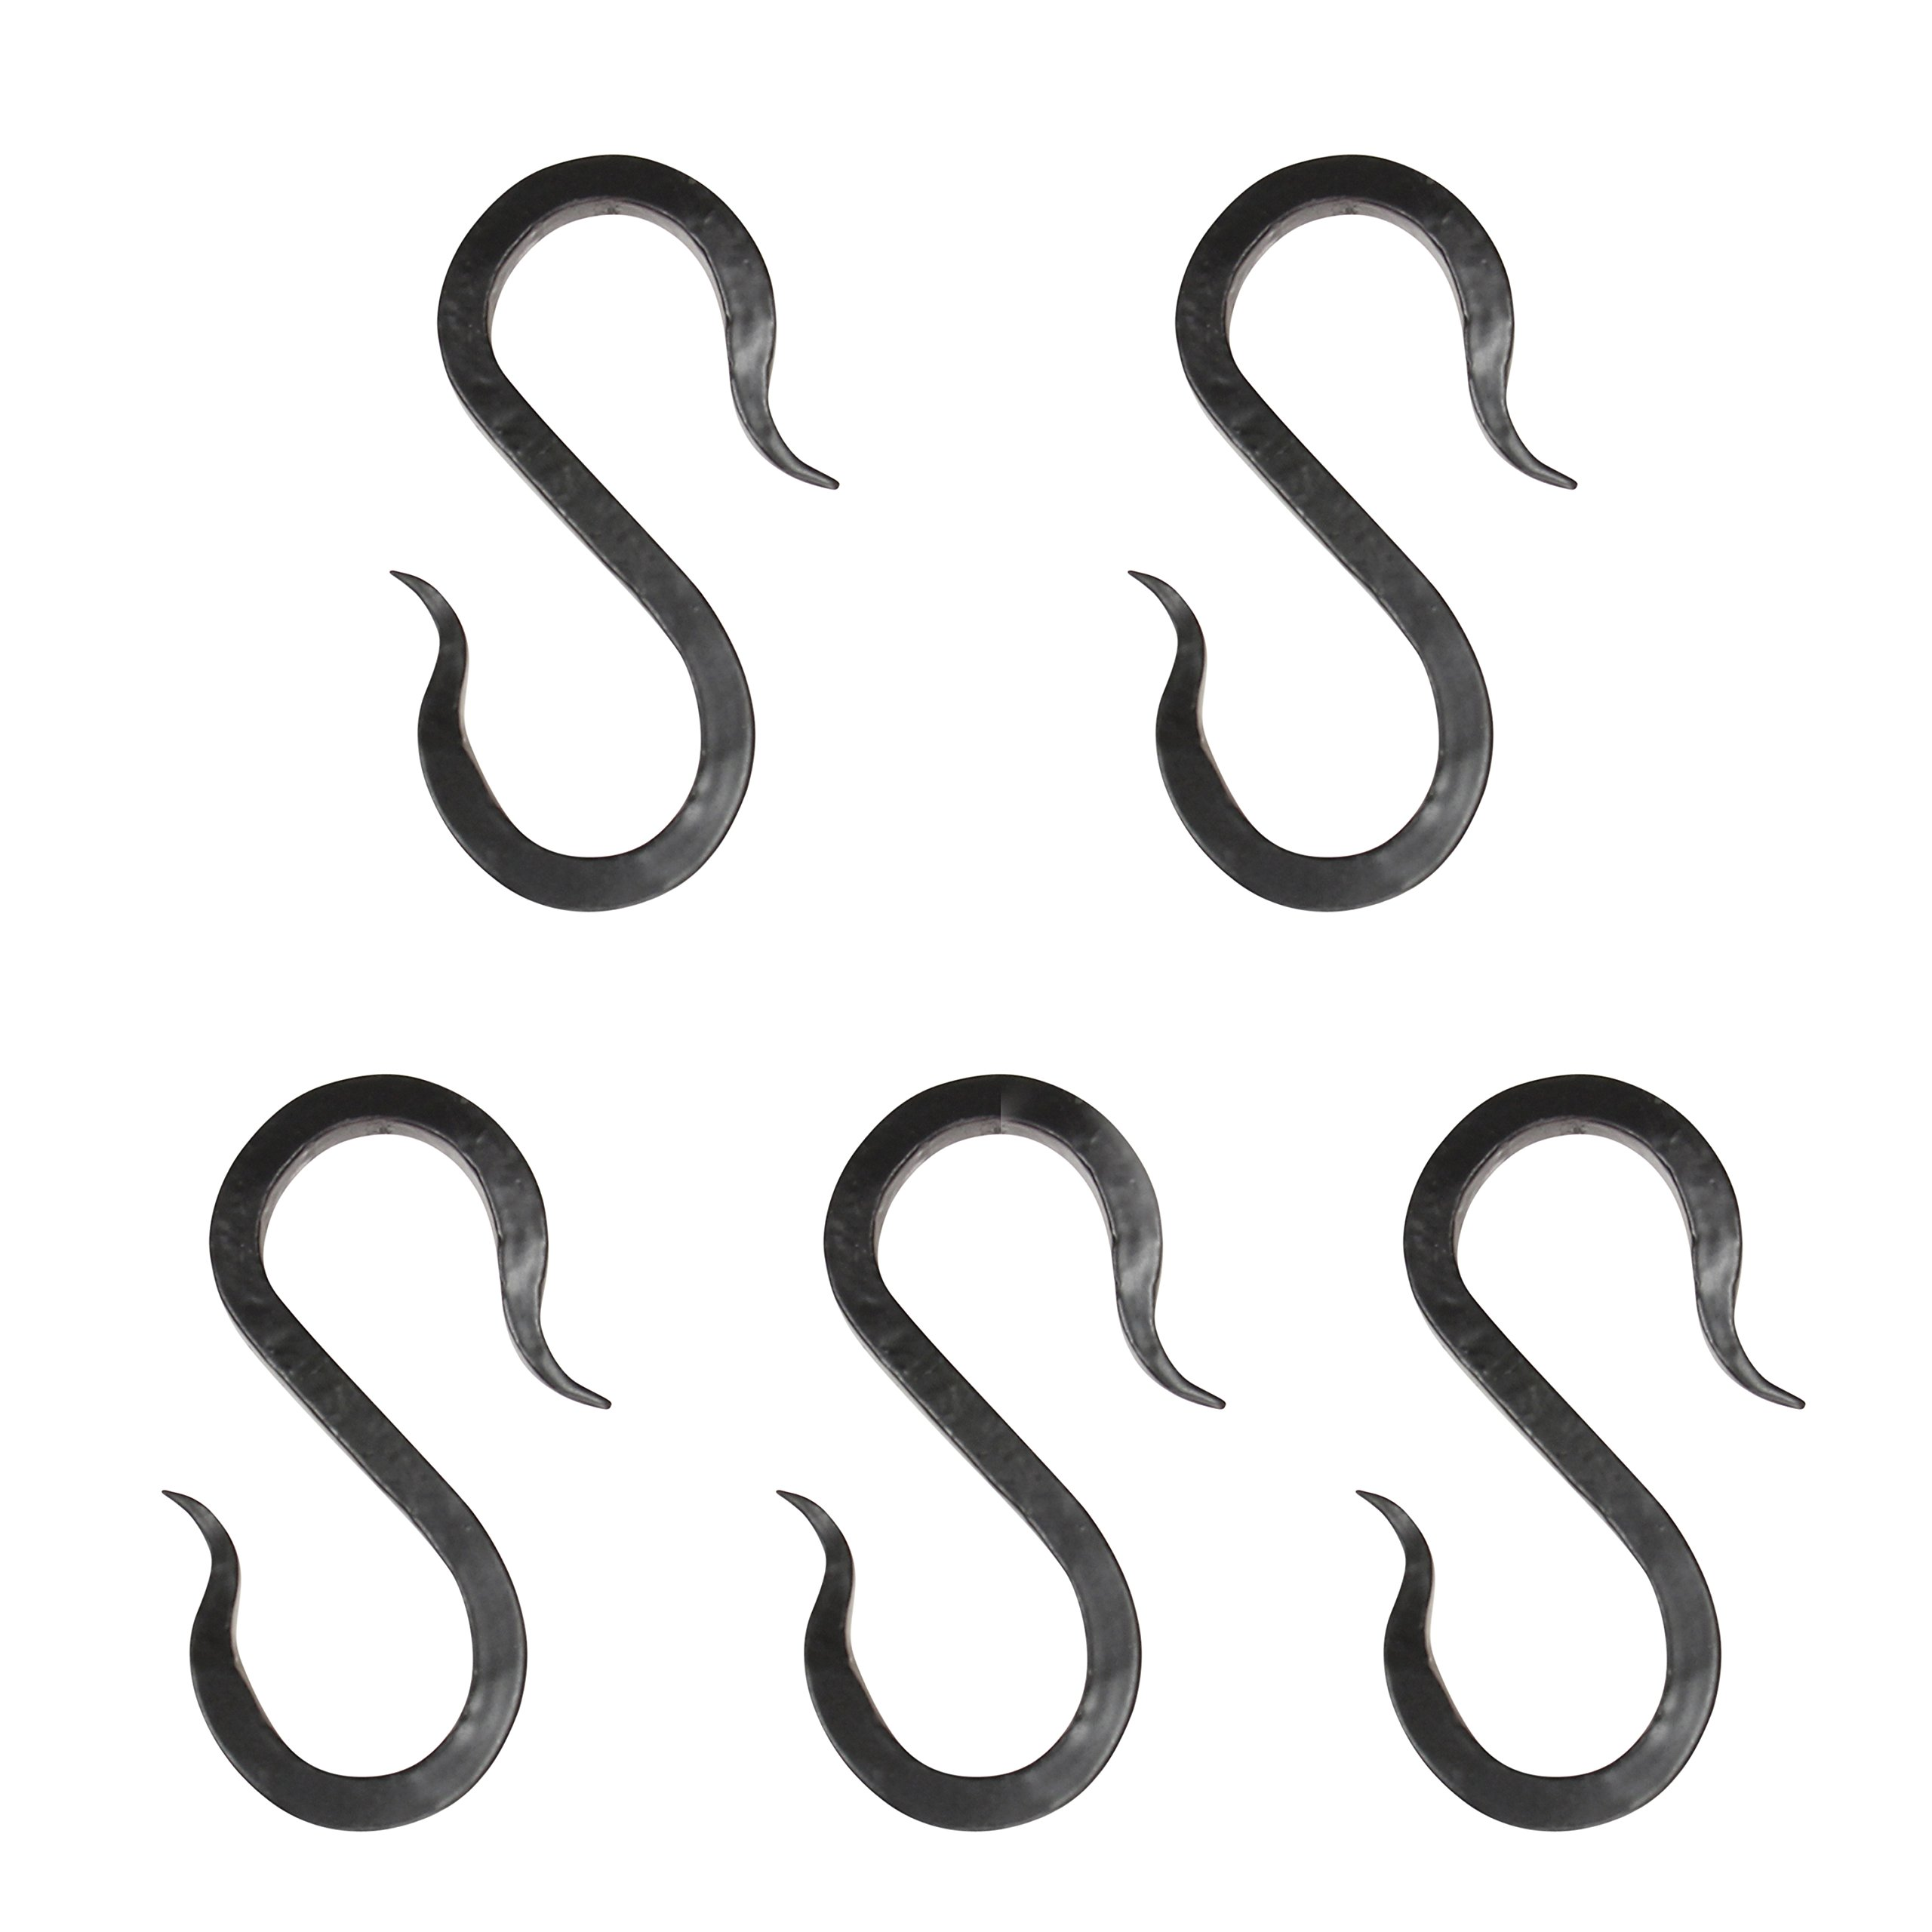 RCH Hardware SH-I-02L-BLK-5 Solid Iron S-Hooks for Connecting Chains to Fixtures   5 Pack (Black)